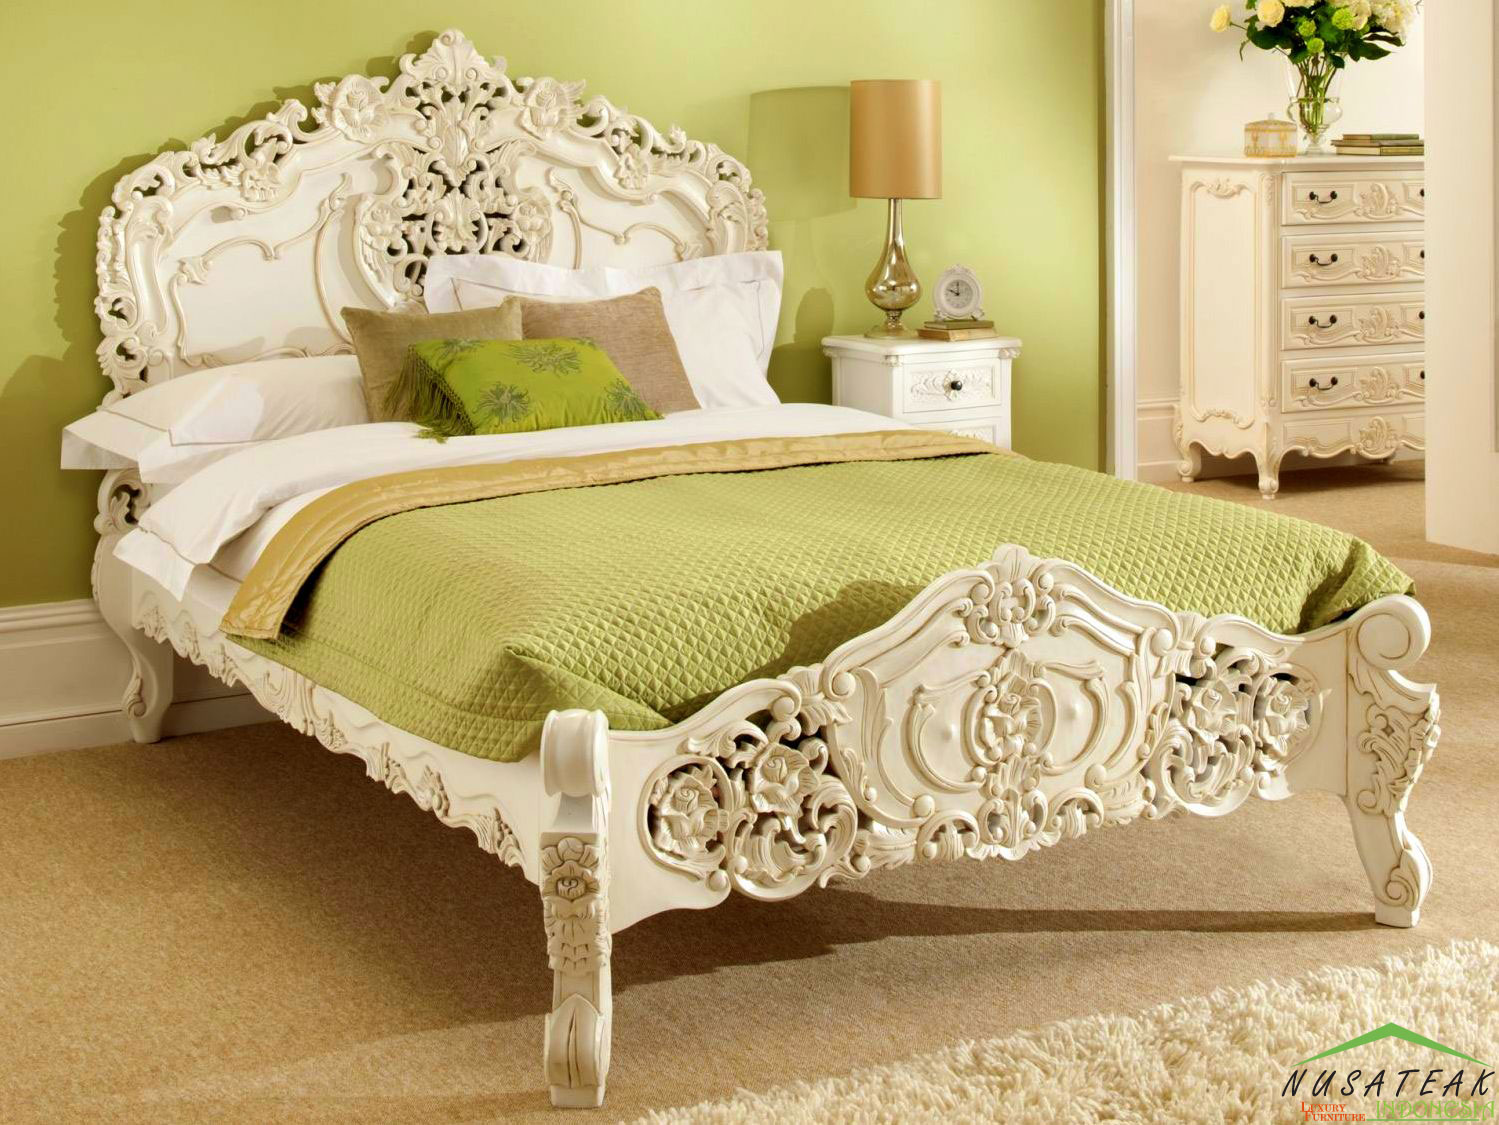 Imogiri French Style Bed Luxury Furniture From Indonesia